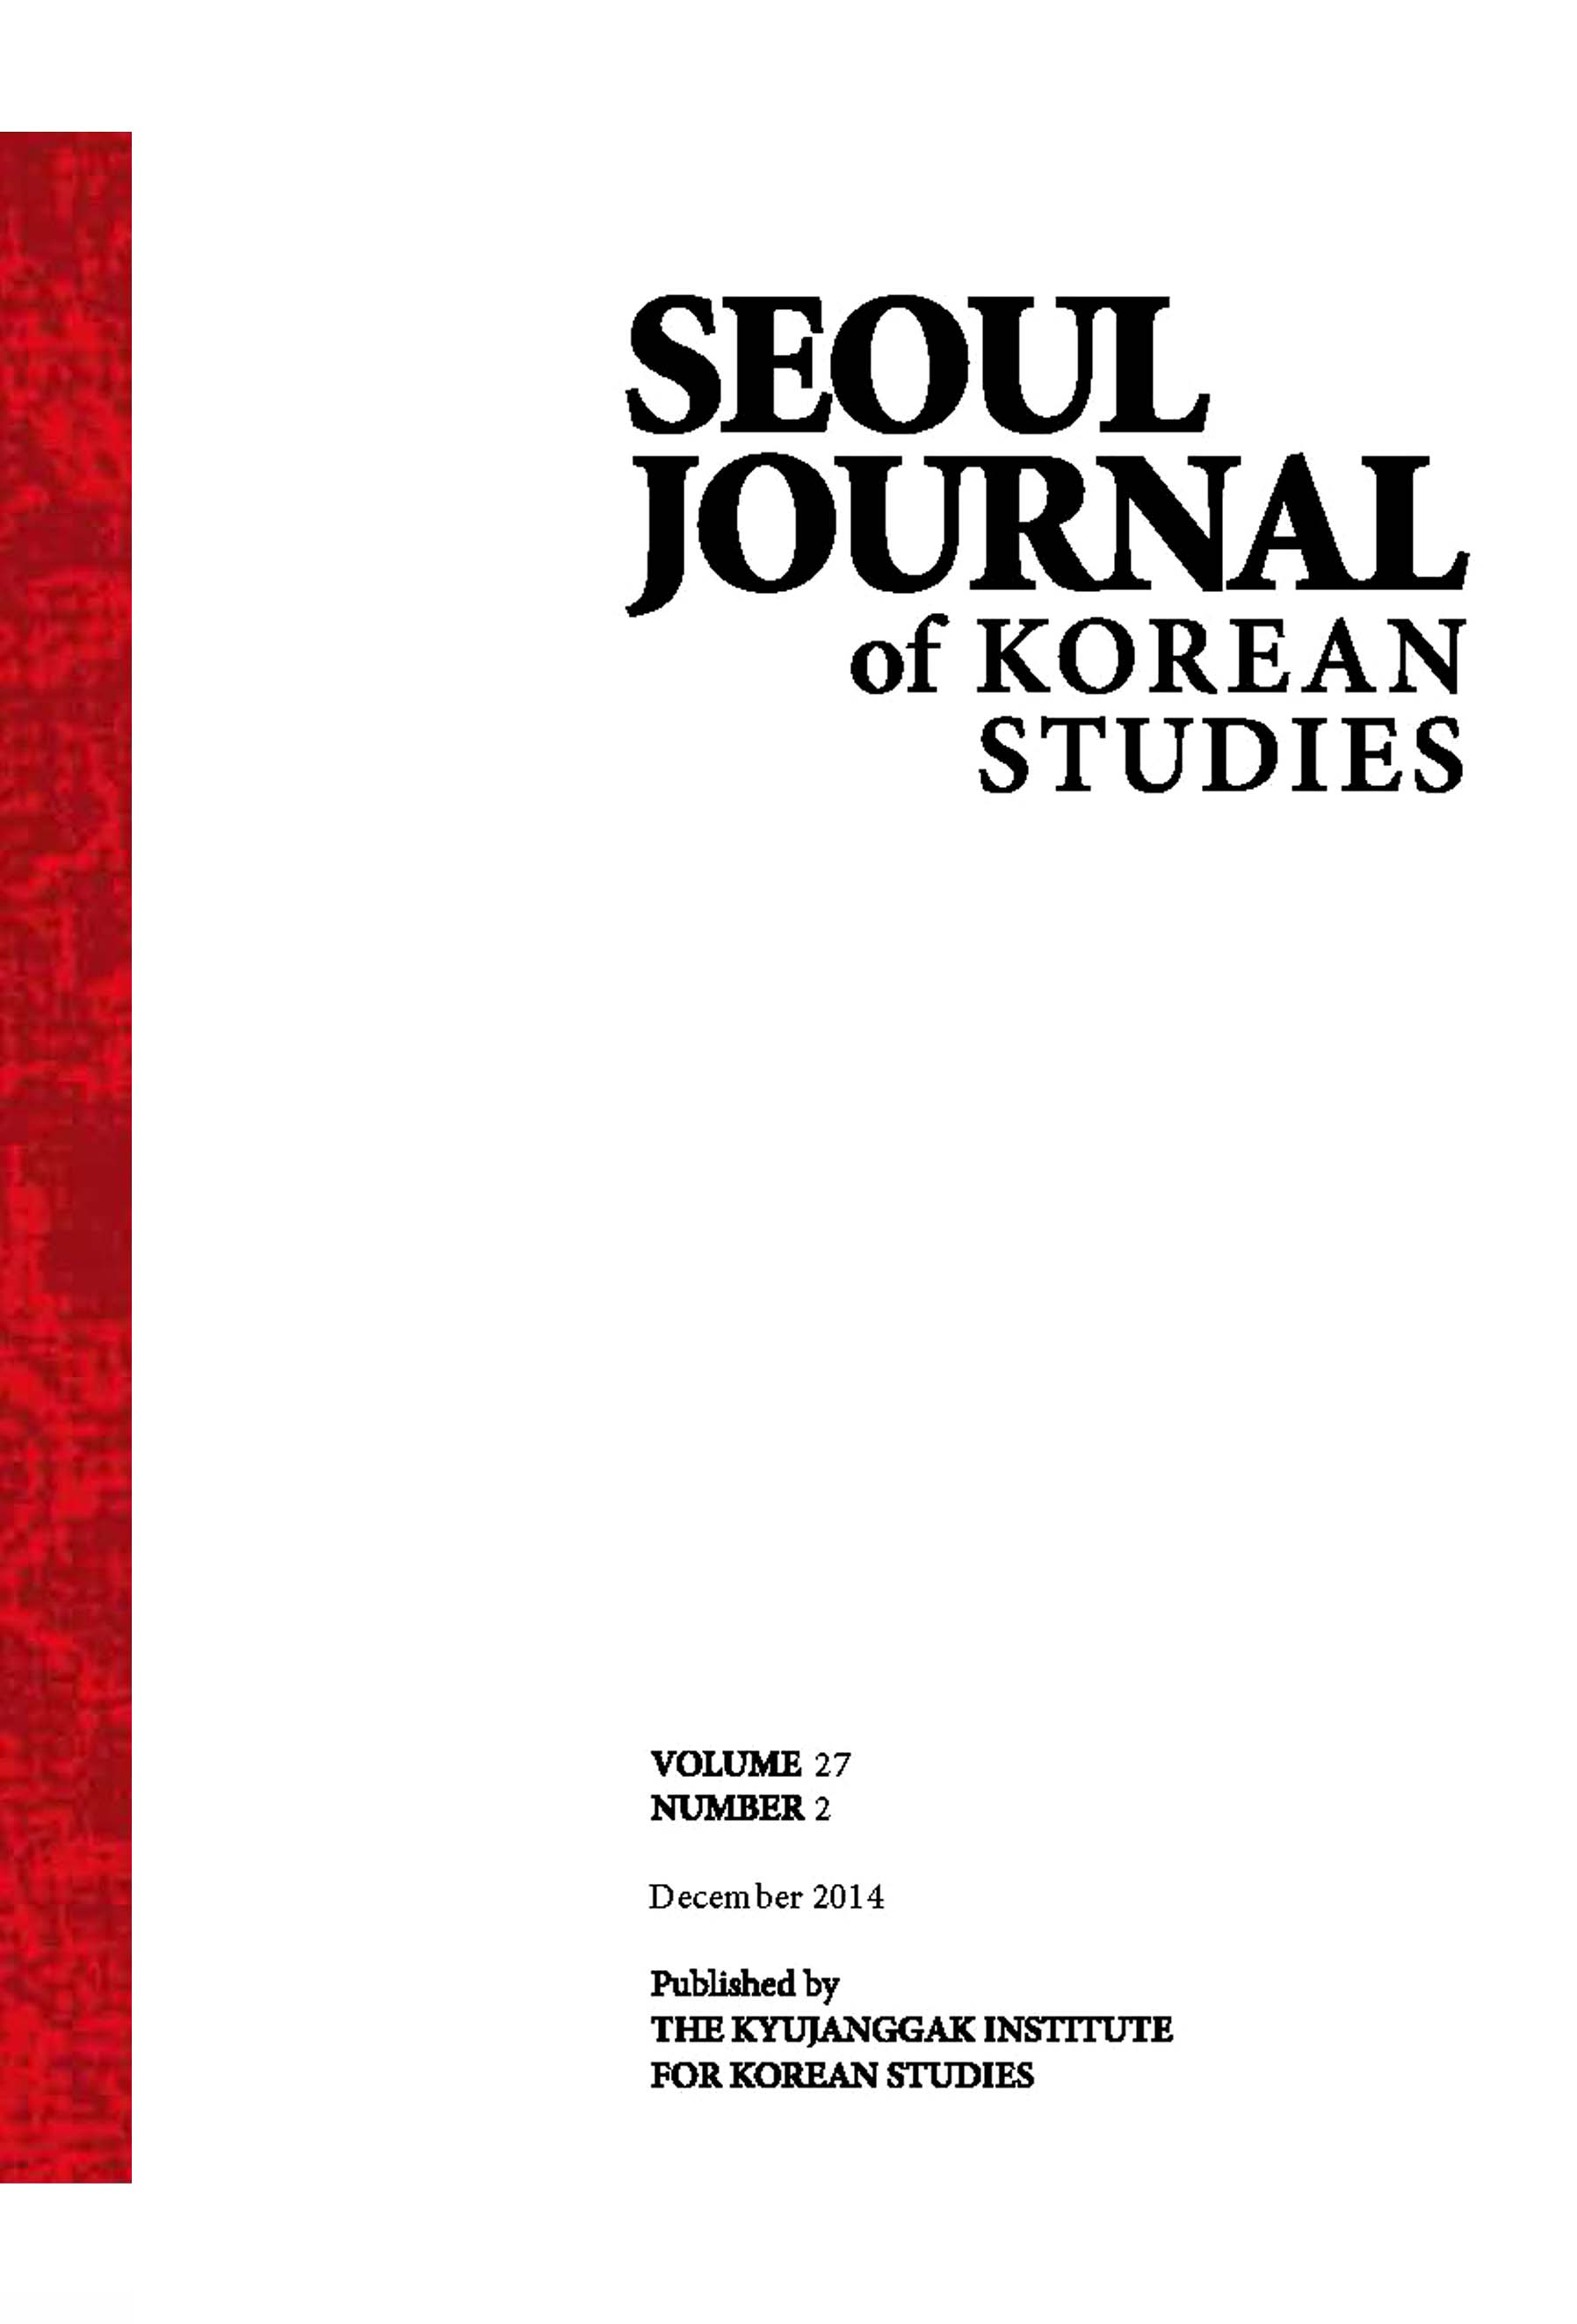 SEOUL JOURNAL OF KOREAN STUDIES Vol.27 No.2